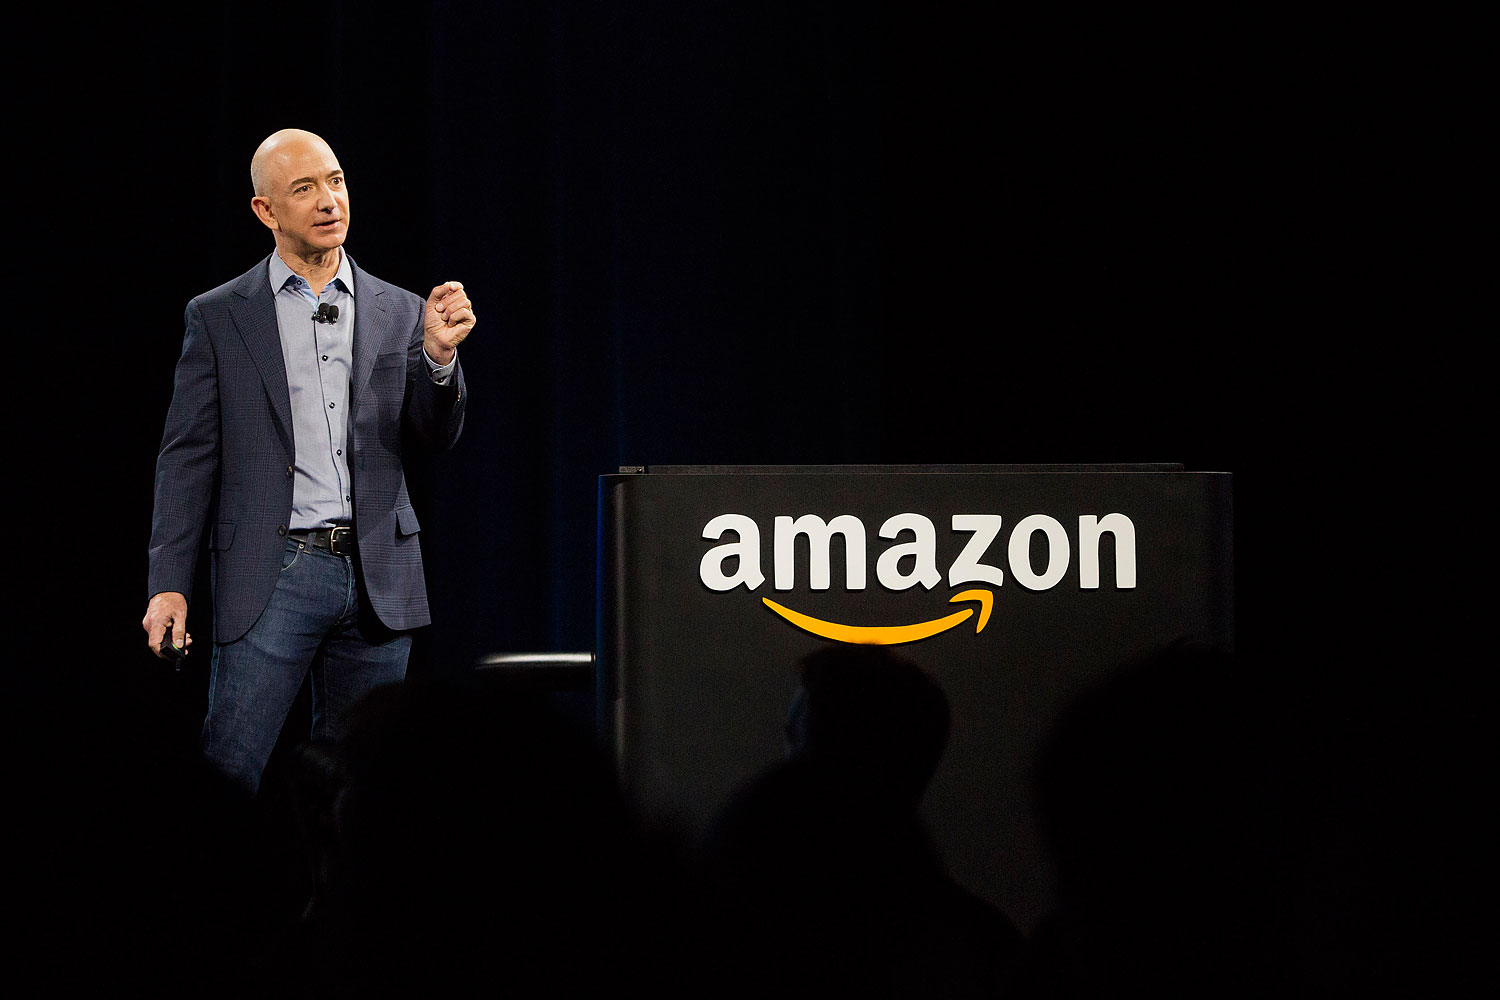 Jeff Bezos, chief executive officer of Amazon, speaks after unveiling the Fire phone during an event in Seattle on June 18, 2014